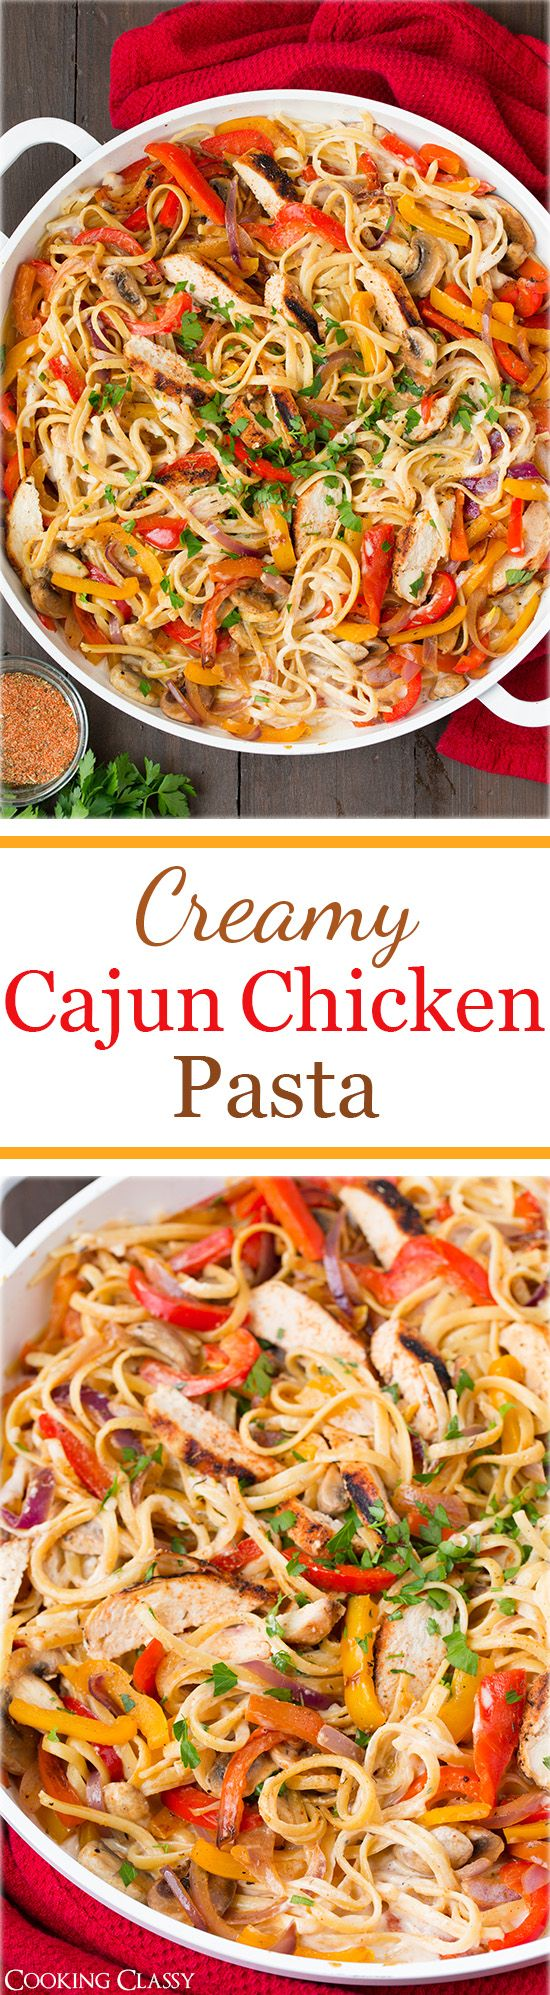 Creamy Cajun Chicken Pasta - this pasta is seriously AMAZING! Linguine covered in a lighter alfredo style sauce with cajun seasoning, and grilled chicken, sauteed peppers, mushrooms and onions. I'll make this again and again!